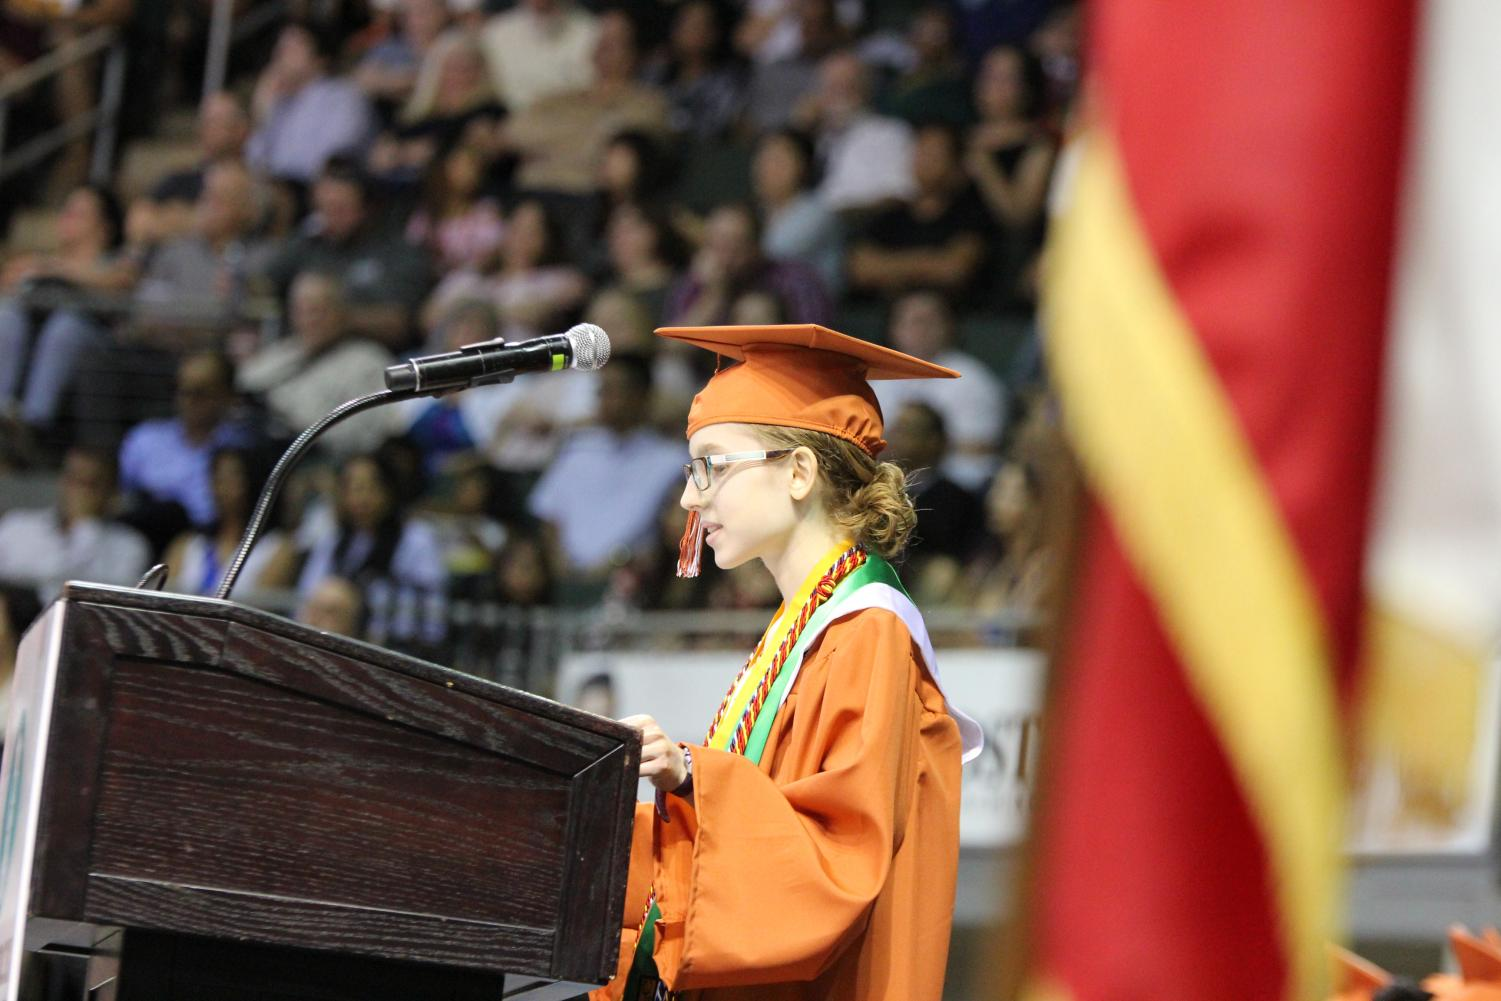 Valedictorian+Straley+Webb+%2719+delivers+her+speech+to+the+audience.